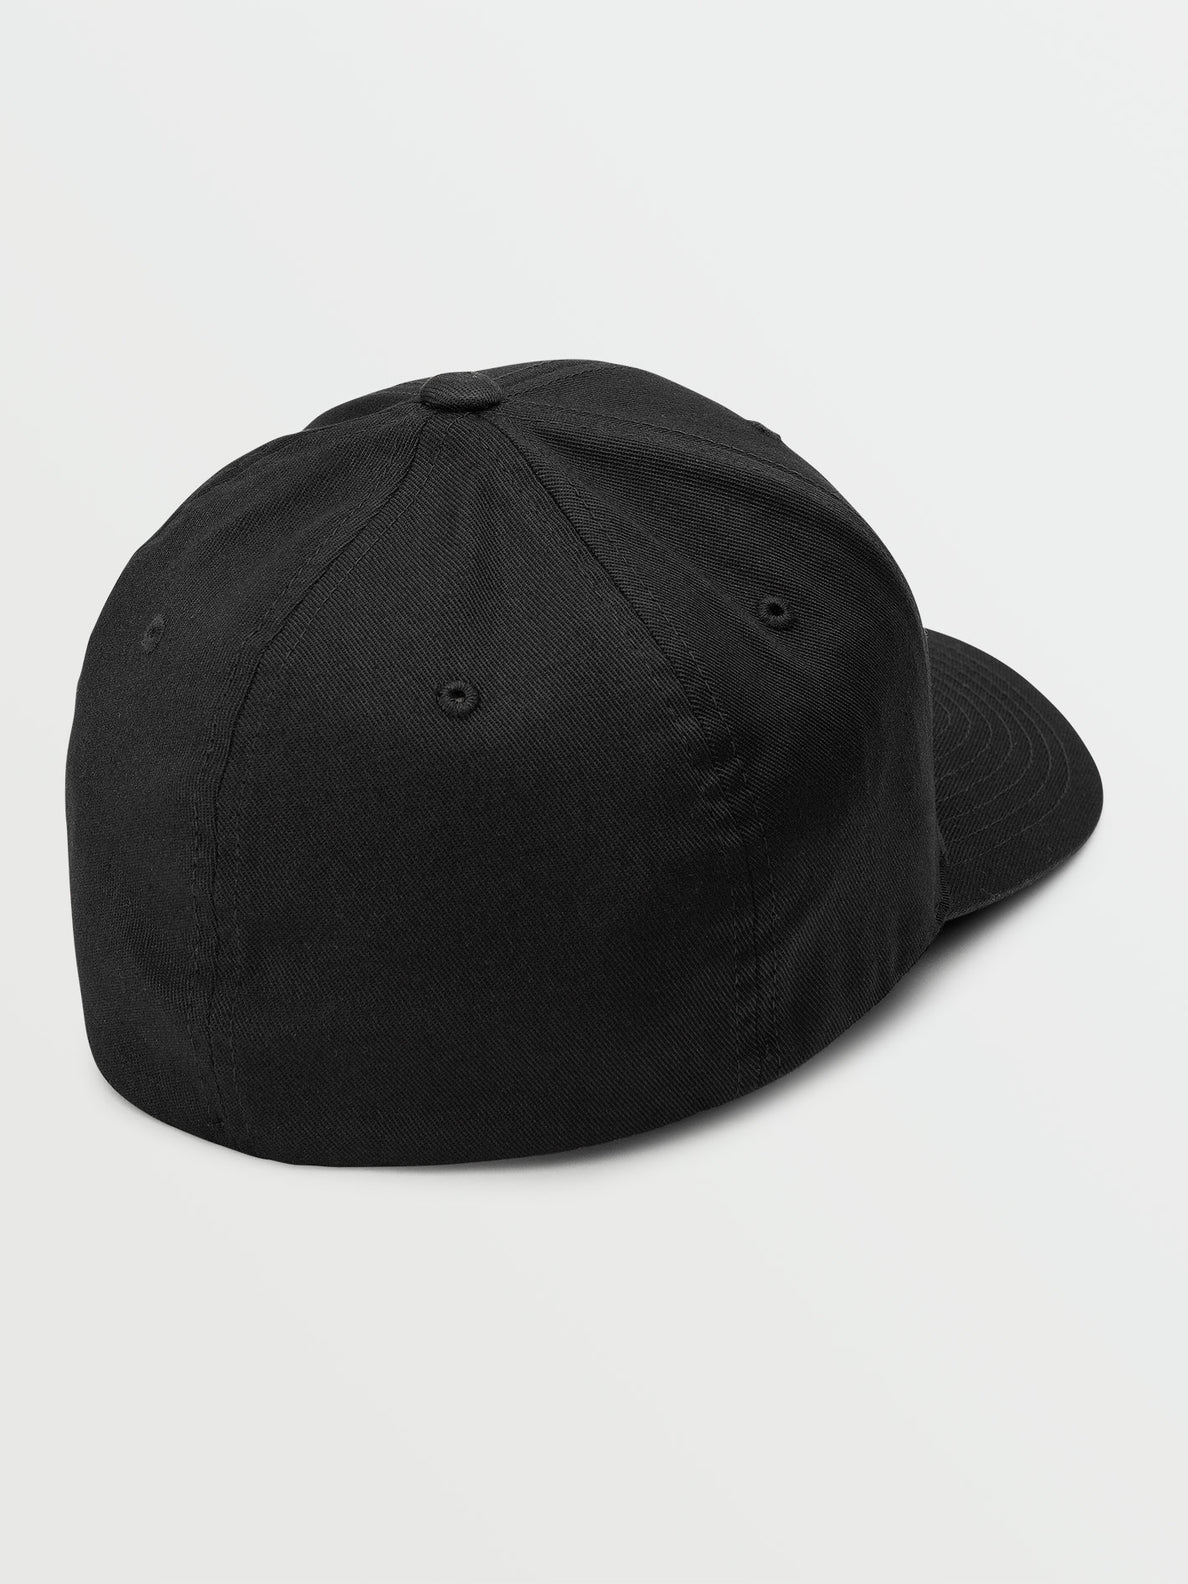 Euro Xfit Hat - New Black